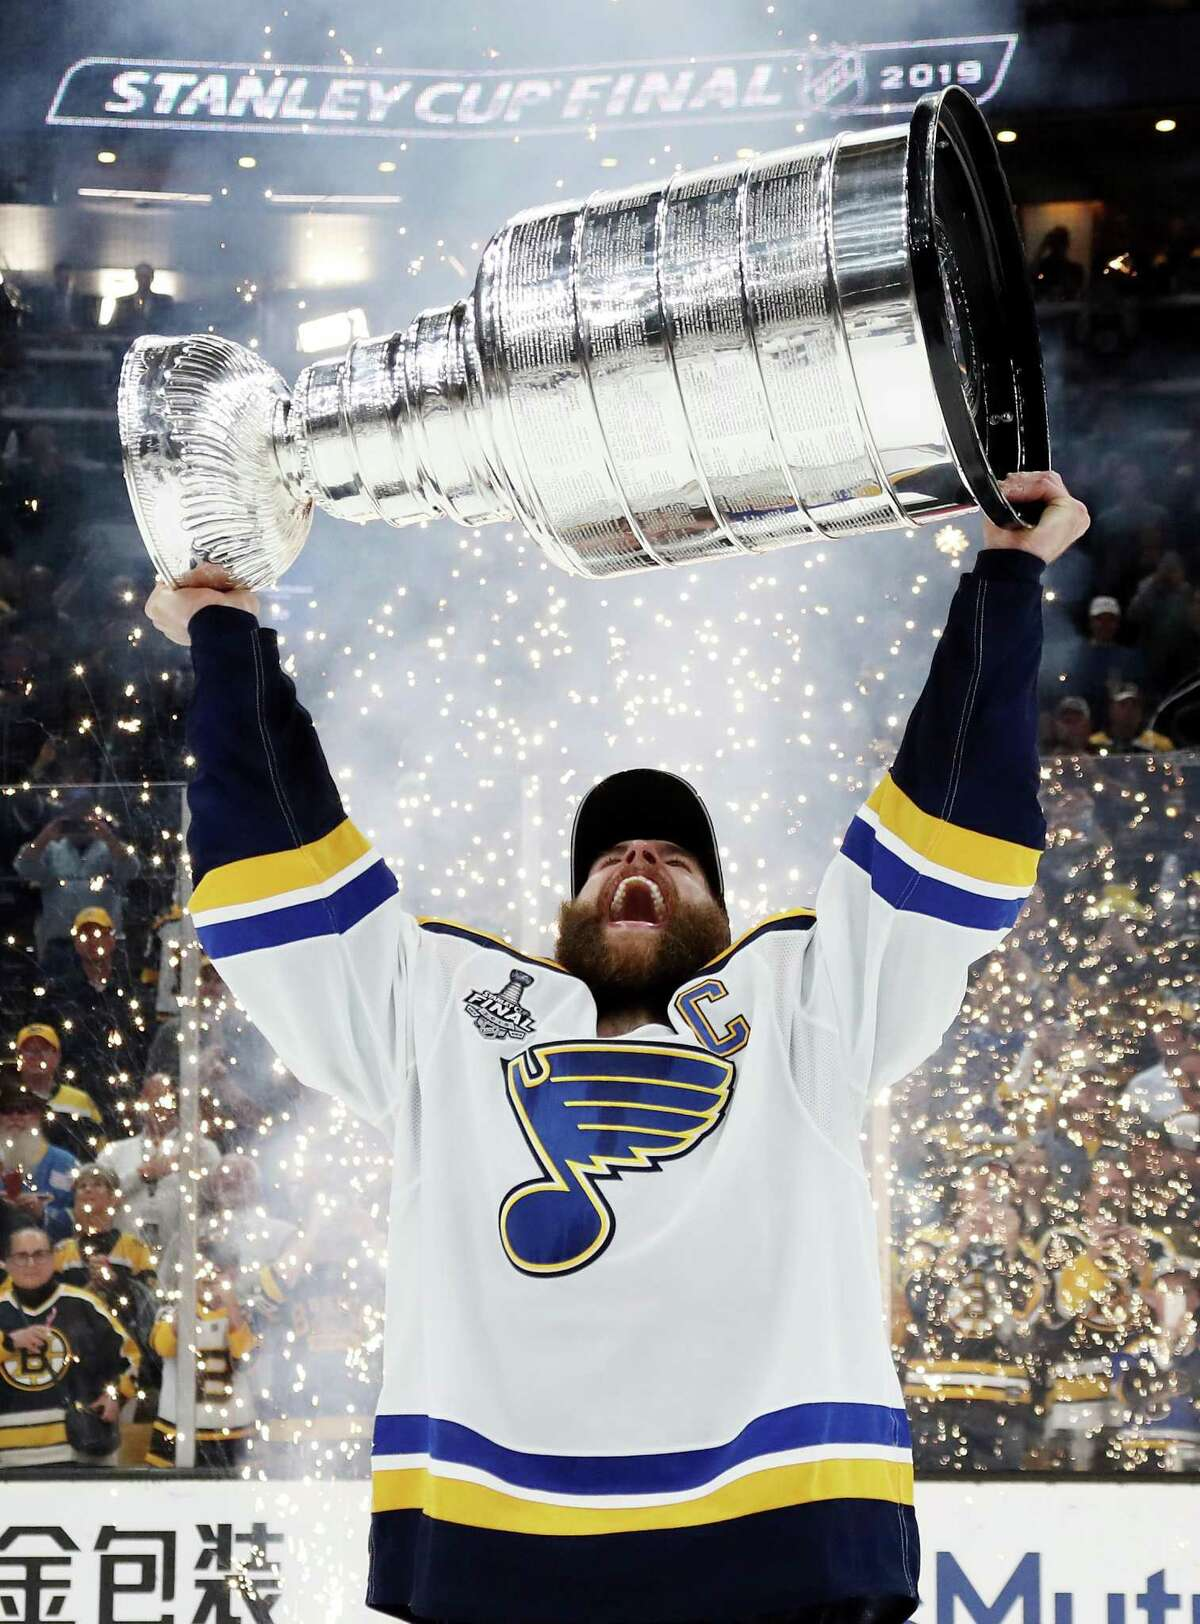 BOSTON, MASSACHUSETTS - JUNE 12: Alex Pietrangelo #27 of the St. Louis Blues celebrates with the Stanley Cup after defeating the Boston Bruins in Game Seven to win the 2019 NHL Stanley Cup Final at TD Garden on June 12, 2019 in Boston, Massachusetts. (Photo by Bruce Bennett/Getty Images) ***BESTPIX***